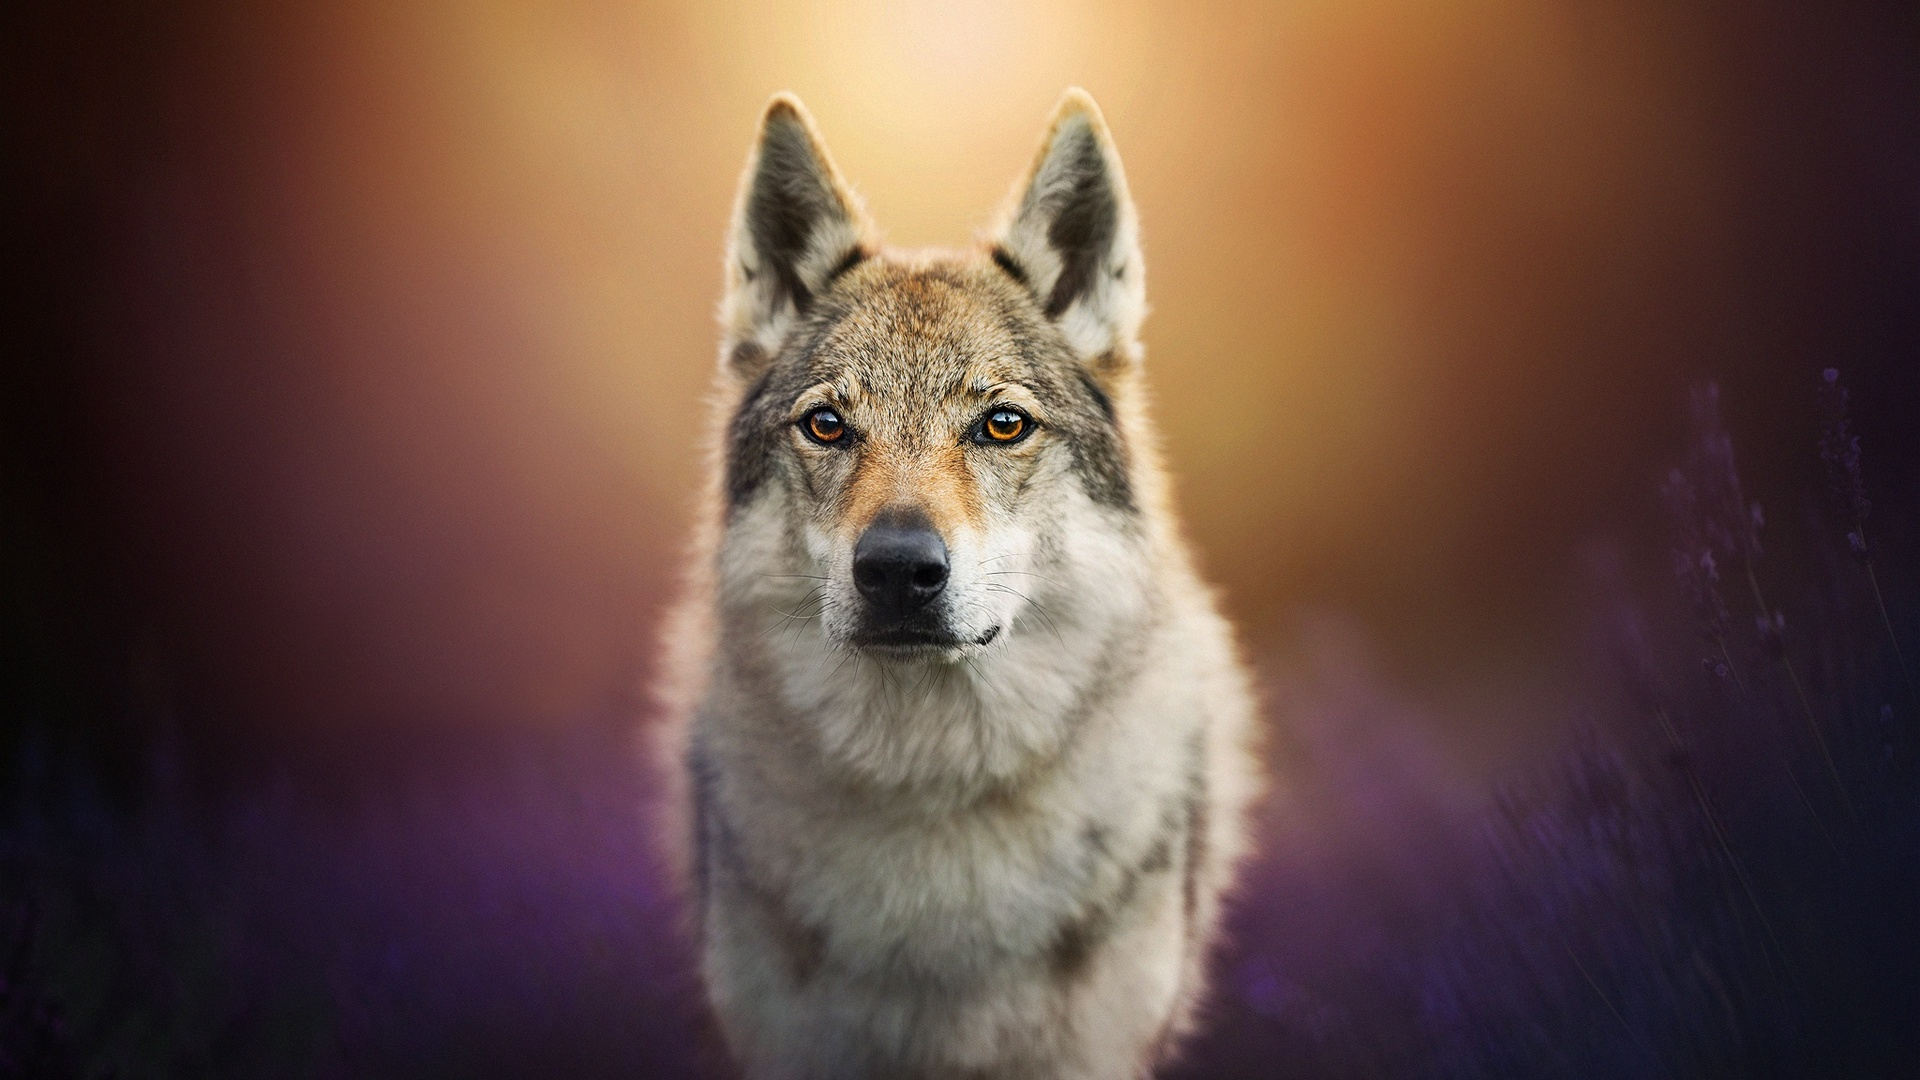 1920x1080 Wolf Dog Laptop Full Hd 1080p Hd 4k Wallpapers Images Backgrounds Photos And Pictures